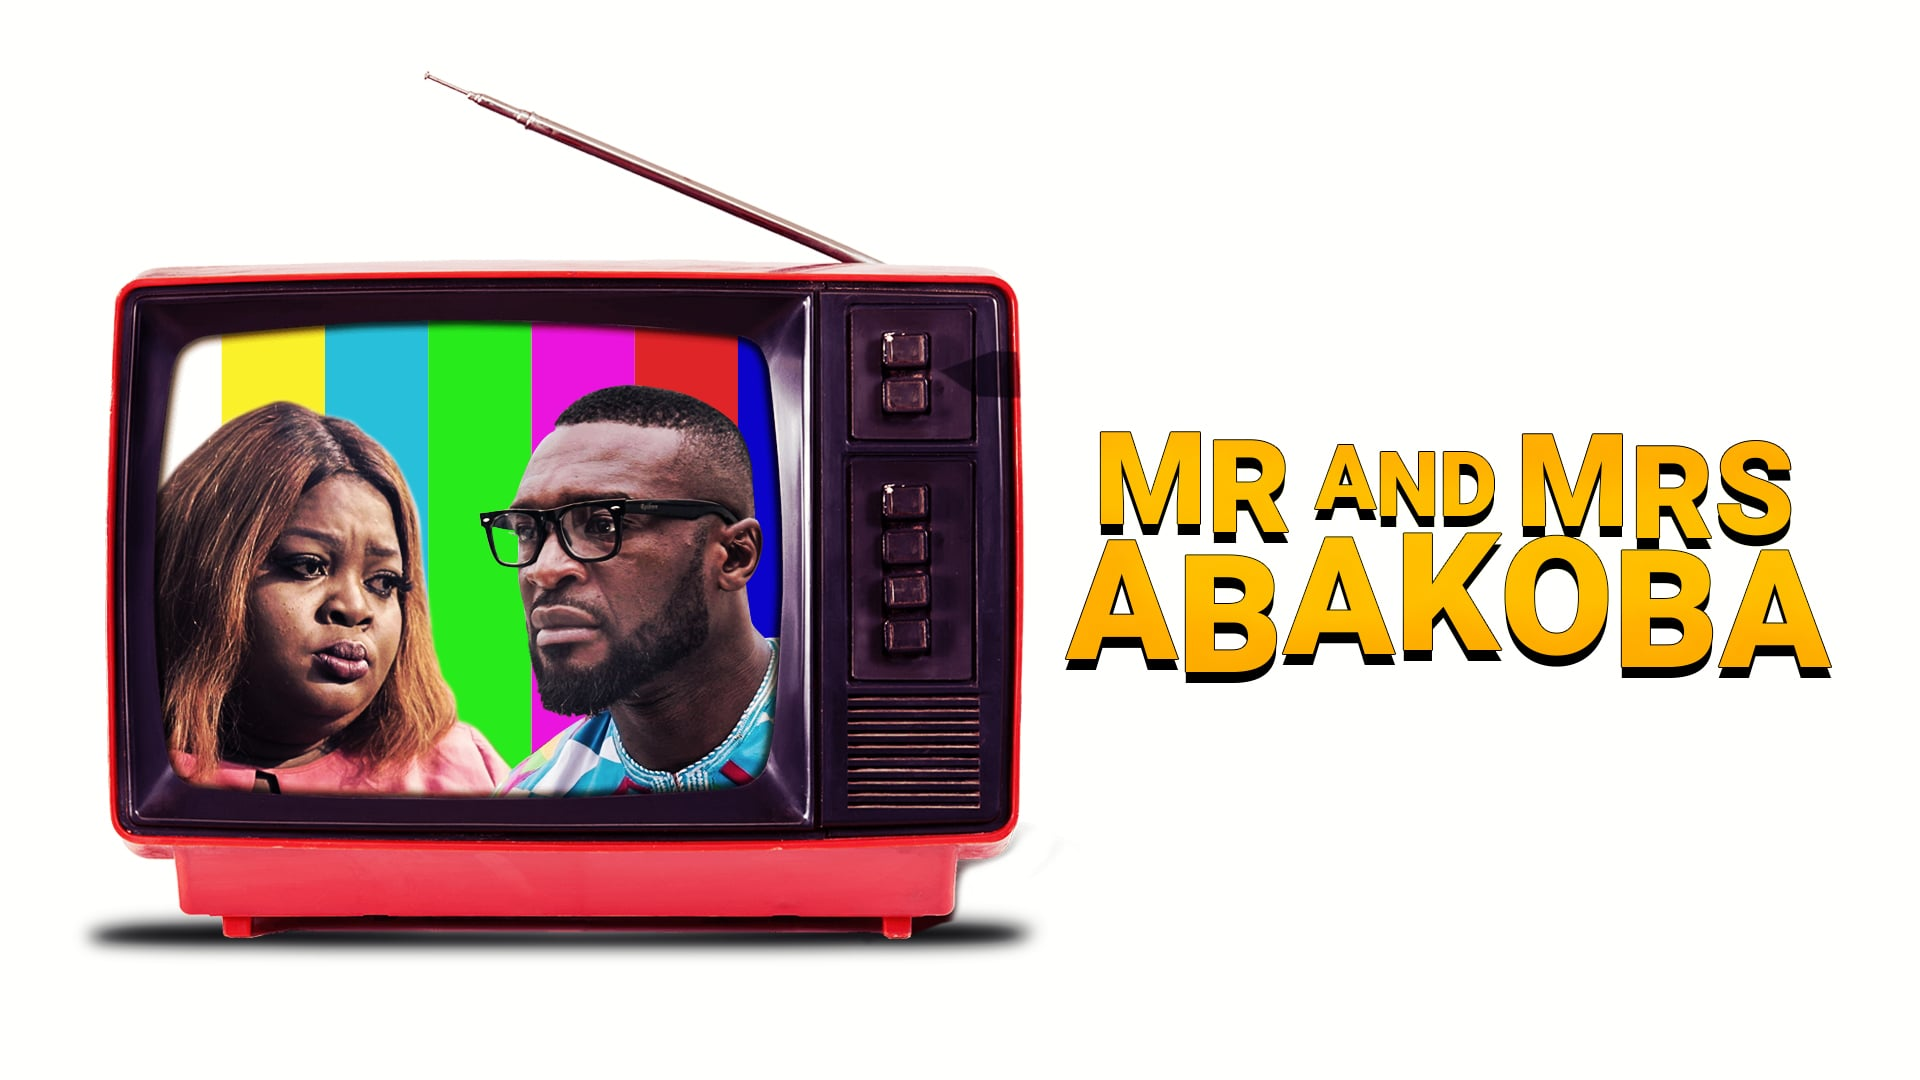 Mr And Mrs Abakoba